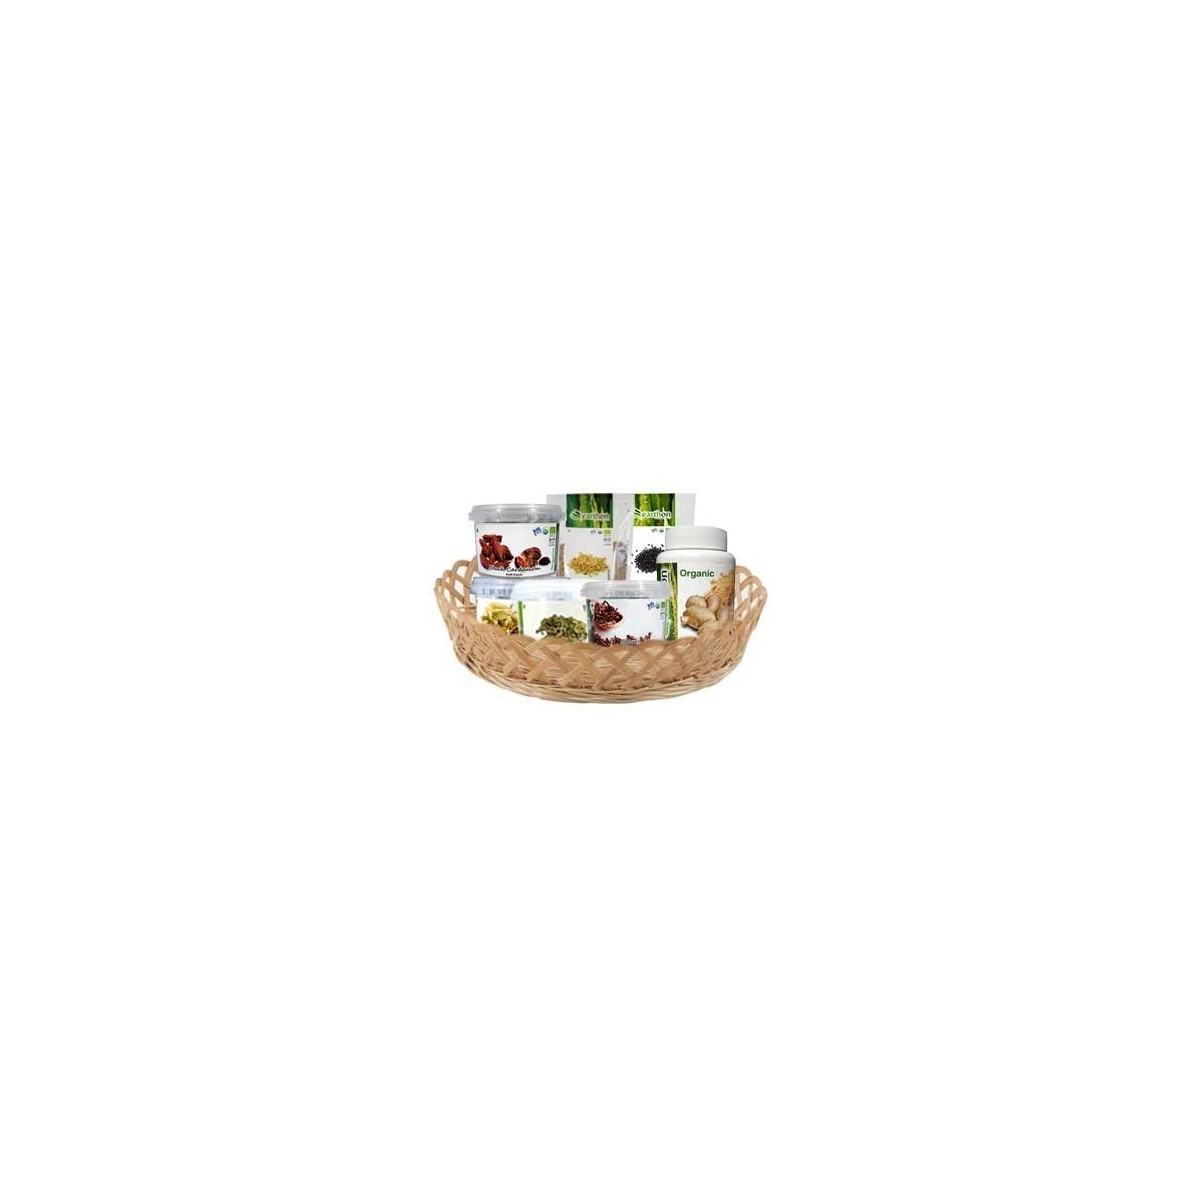 Earthon Organic Spices Basket